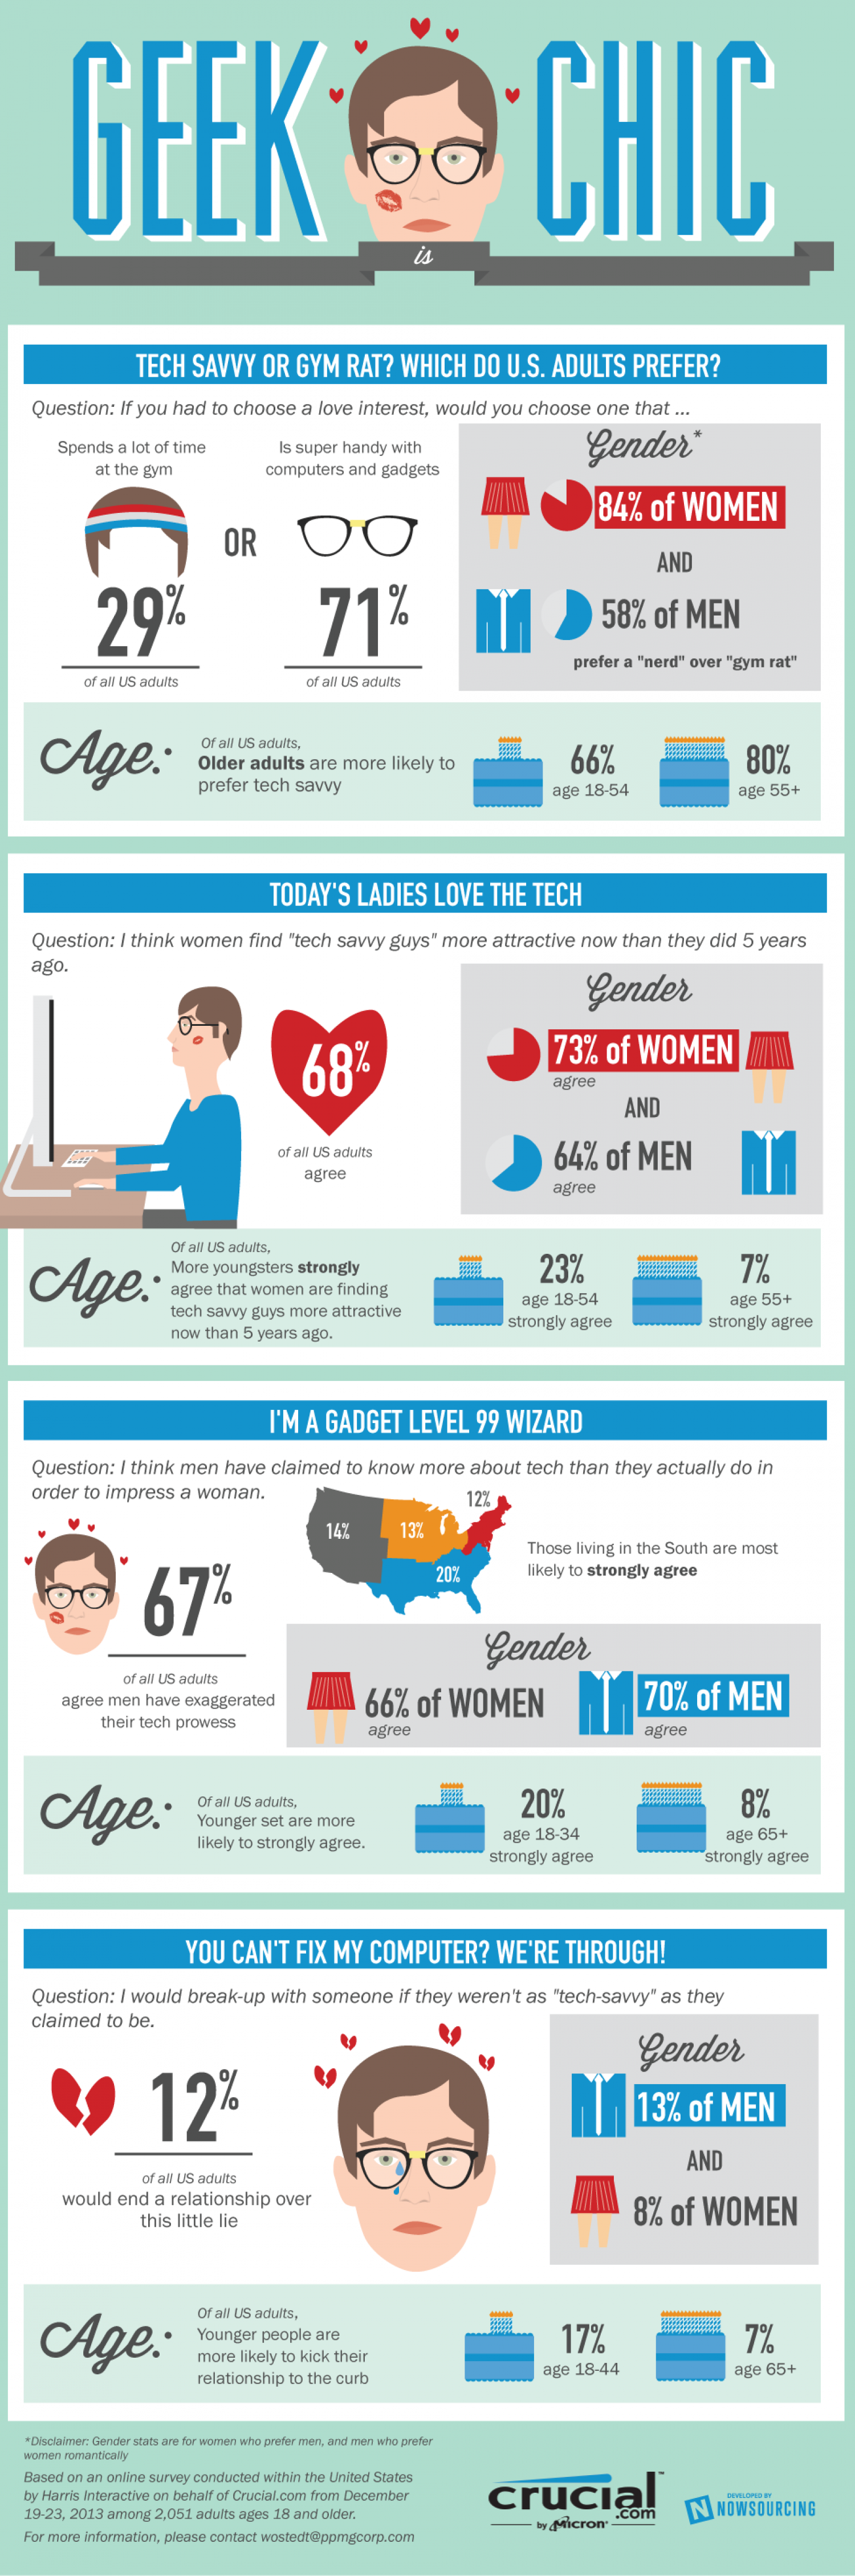 Geek is Chic Infographic